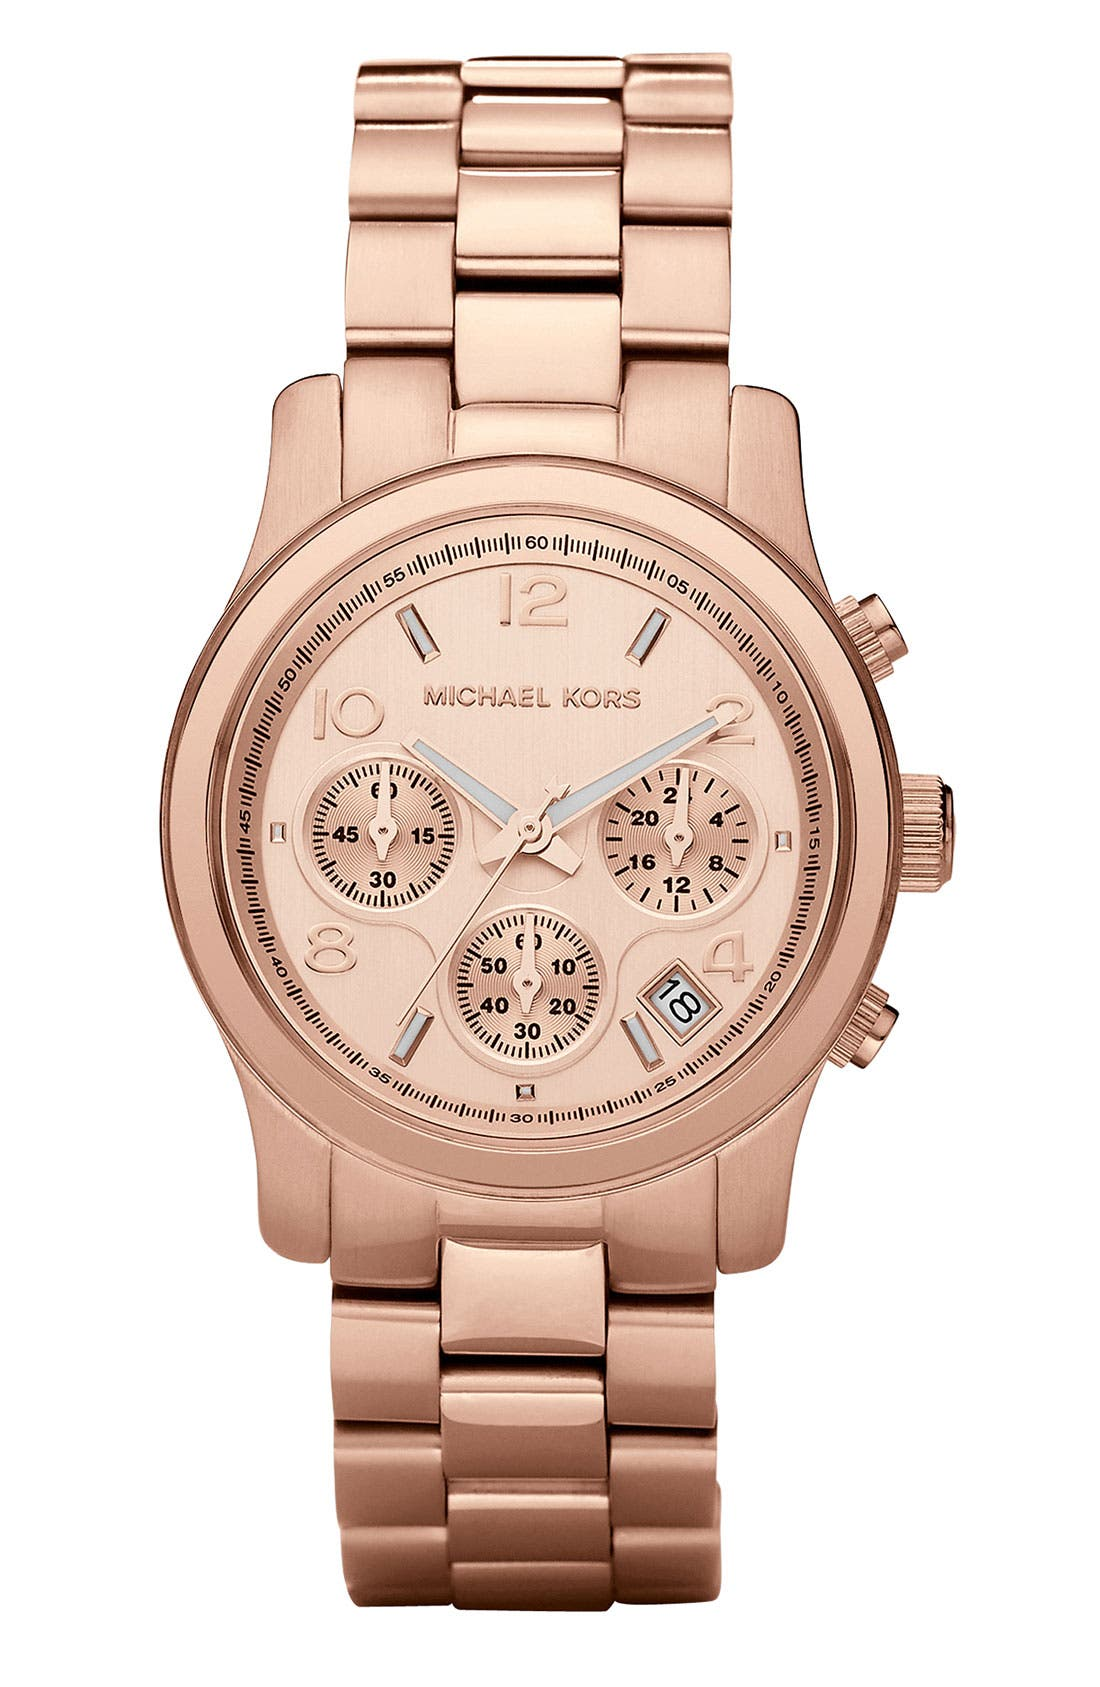 Main Image - Michael Kors 'Runway' Rose Gold Plated Watch, 37mm